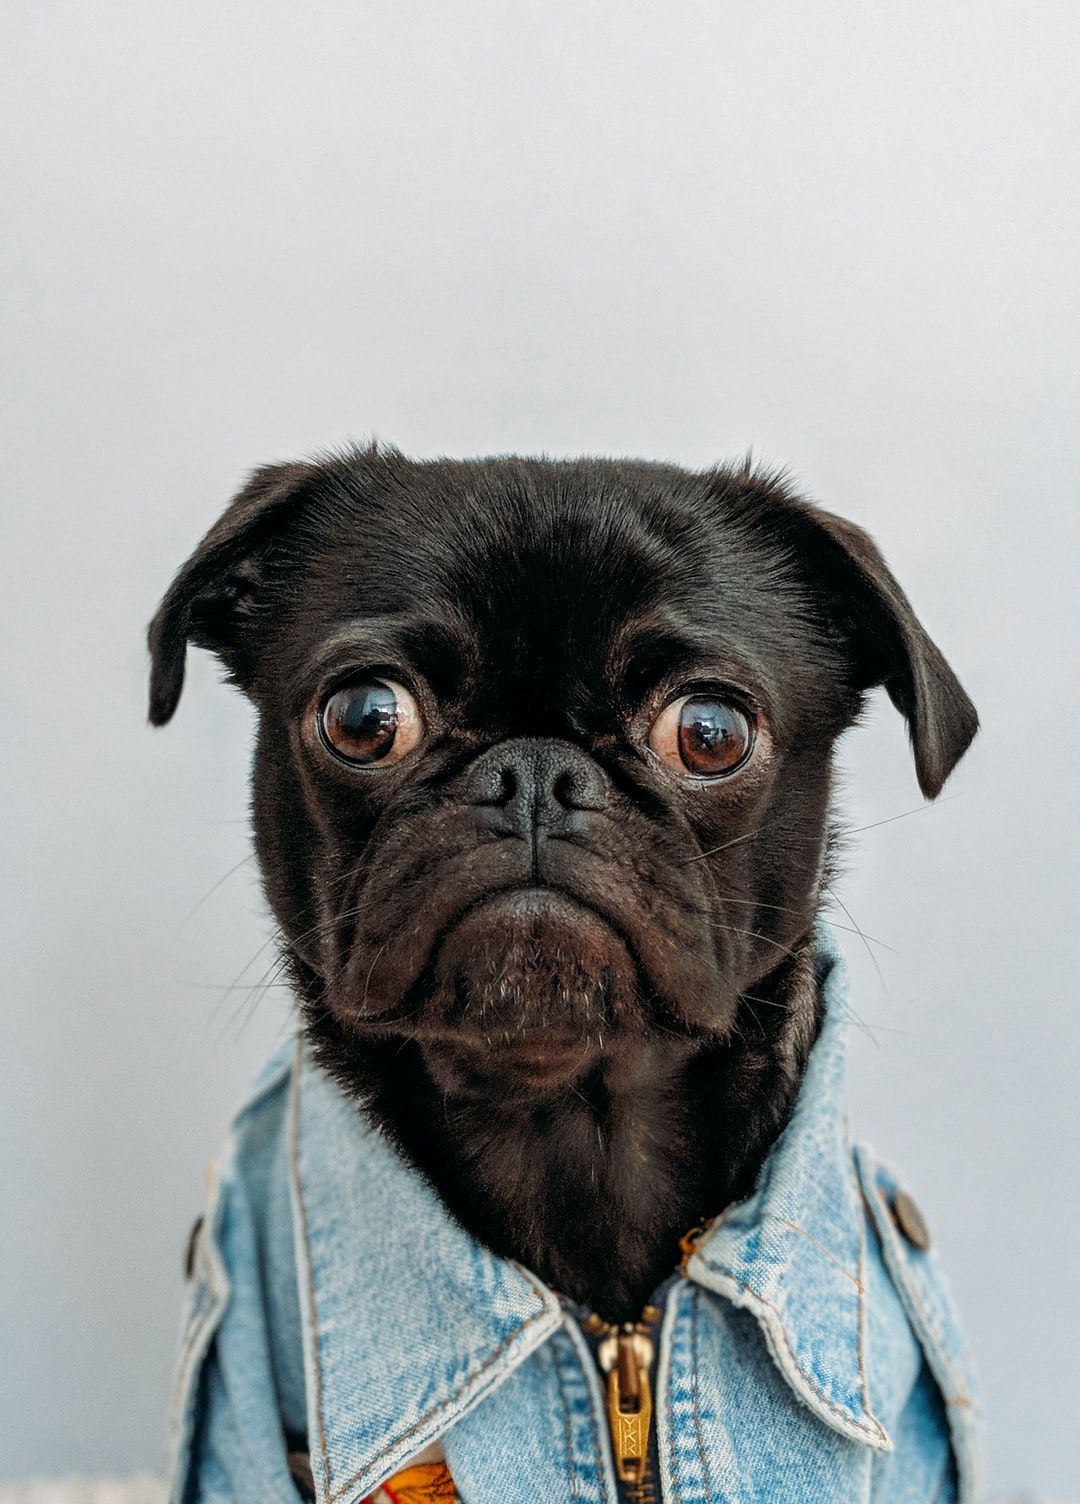 Toshi (black pug) wearing my pilot jacket.